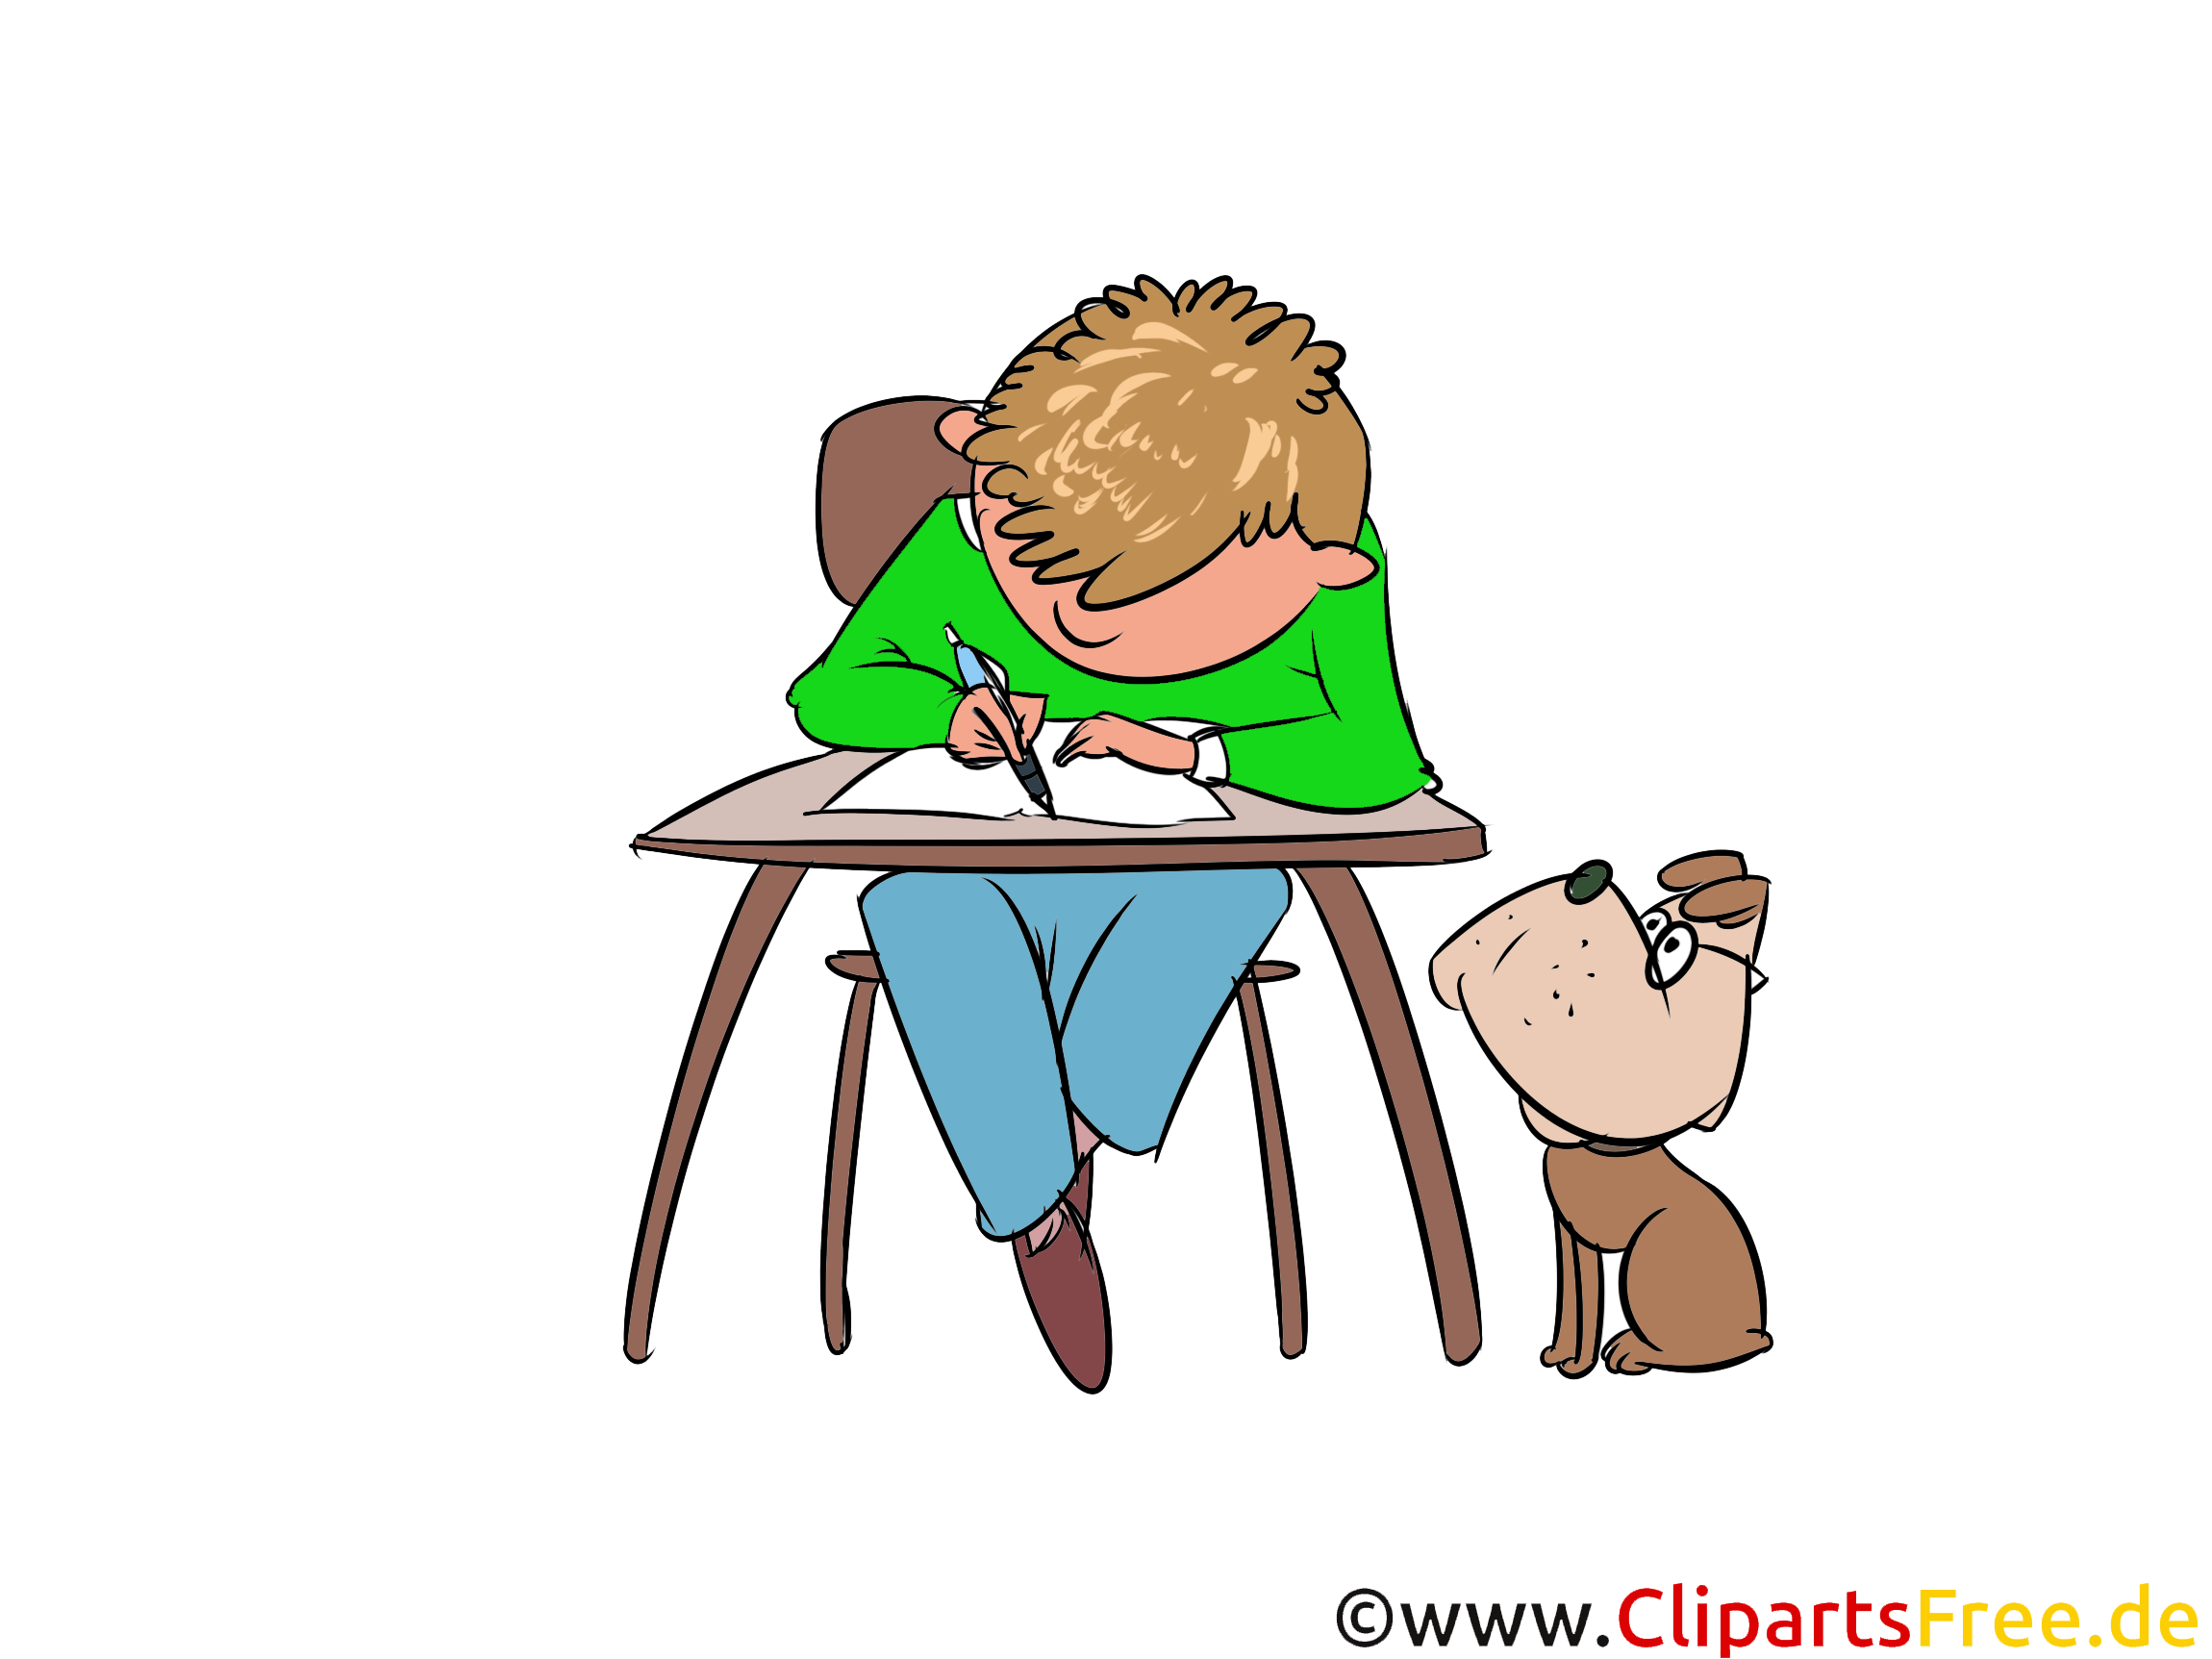 Unterricht in der schule clipart bild illustration grafik for Schule grafik